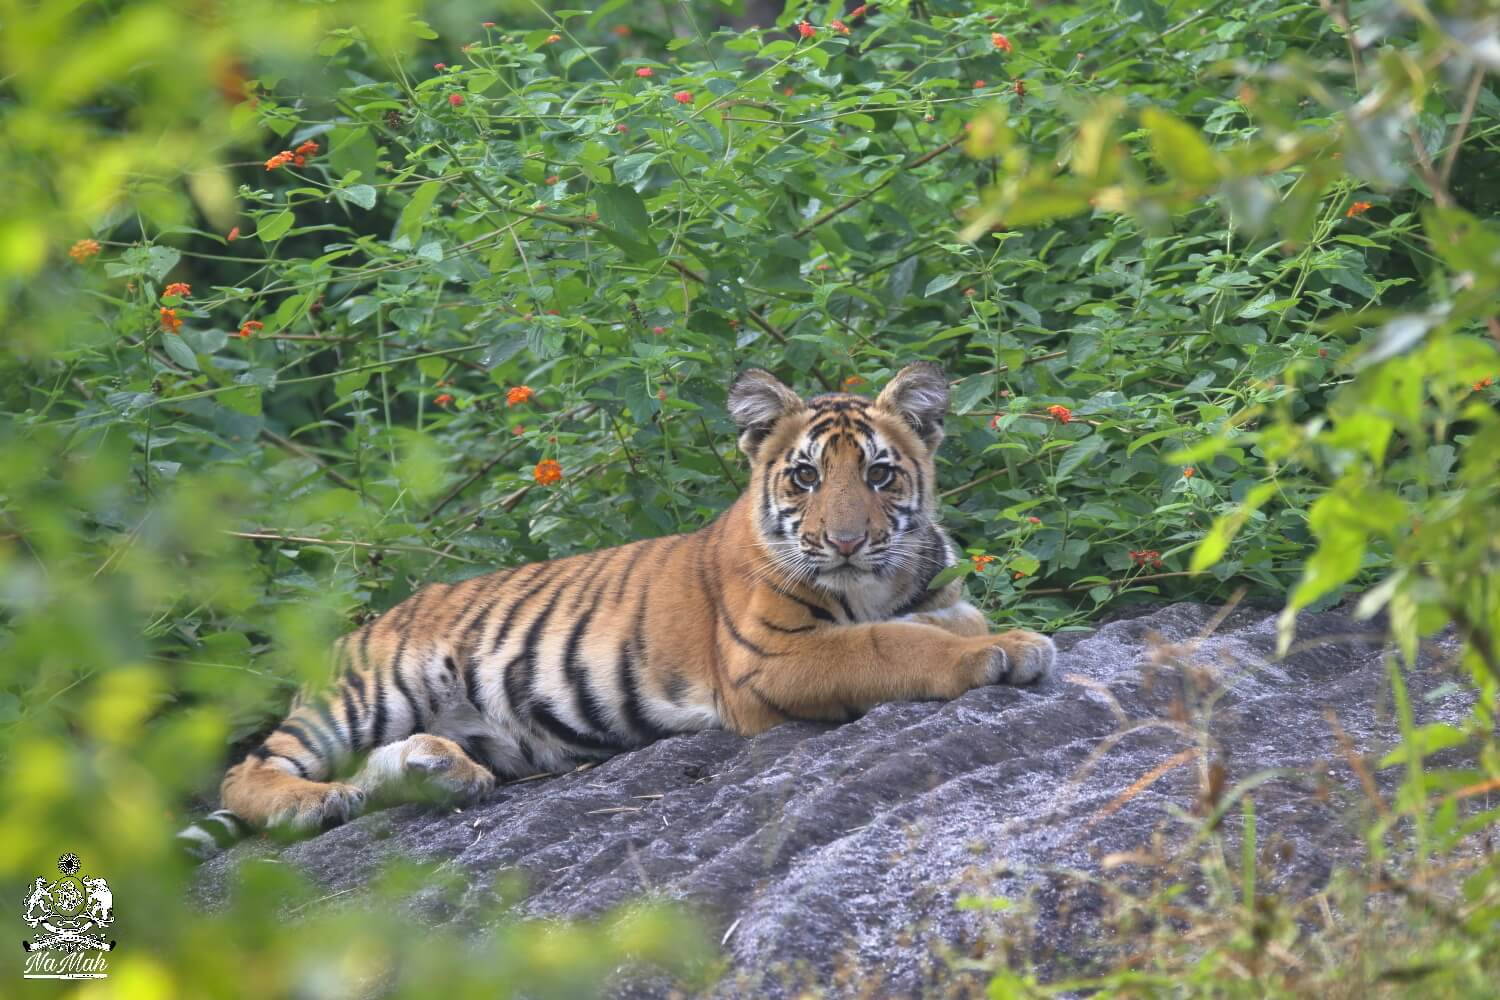 Tiger Dhawajhandi's cub sitting on rock in central Indian jungles